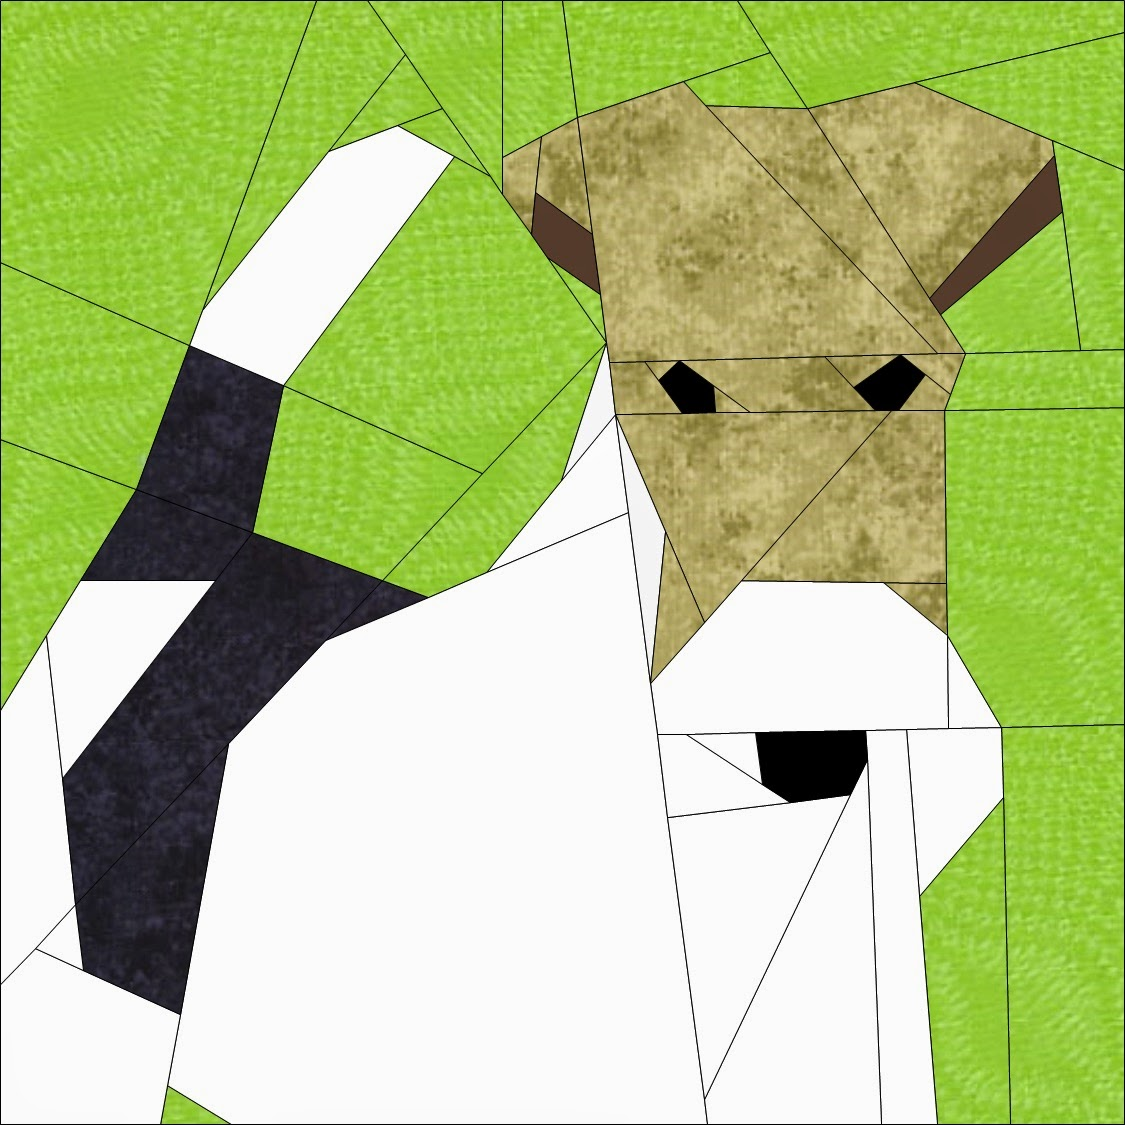 Wire hair fox terrier quilt block